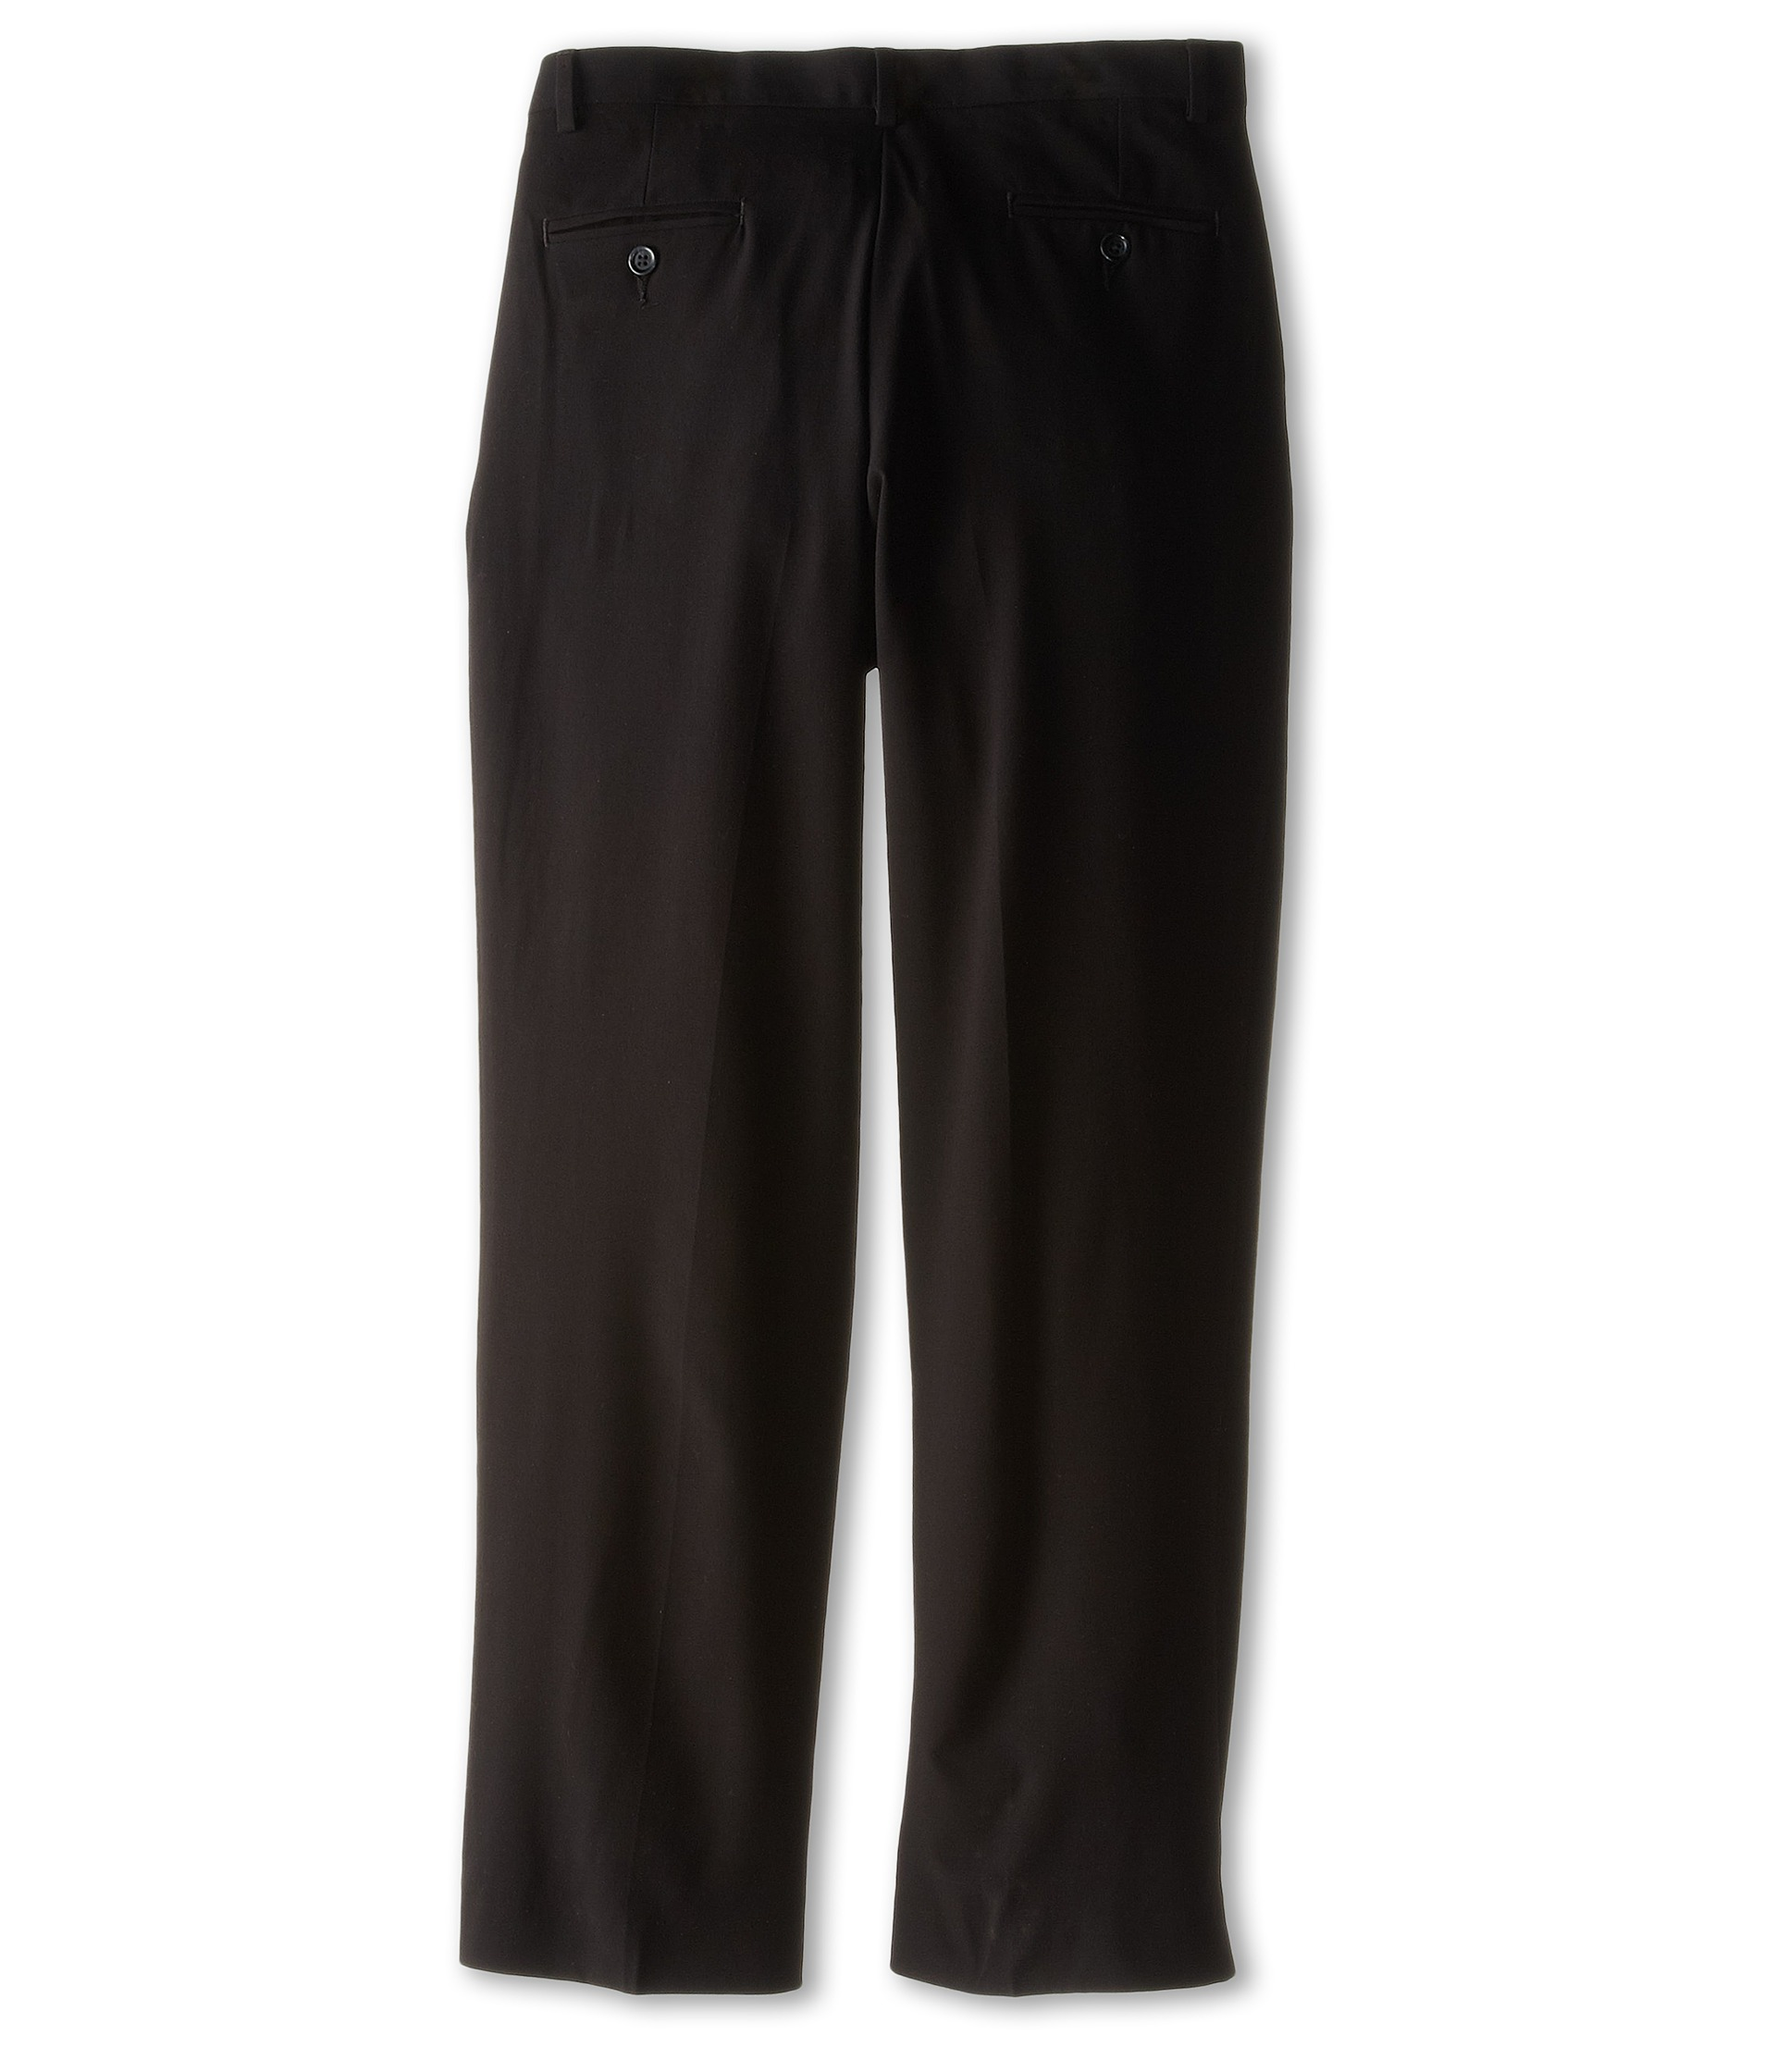 Pleated Dress Pants For Women